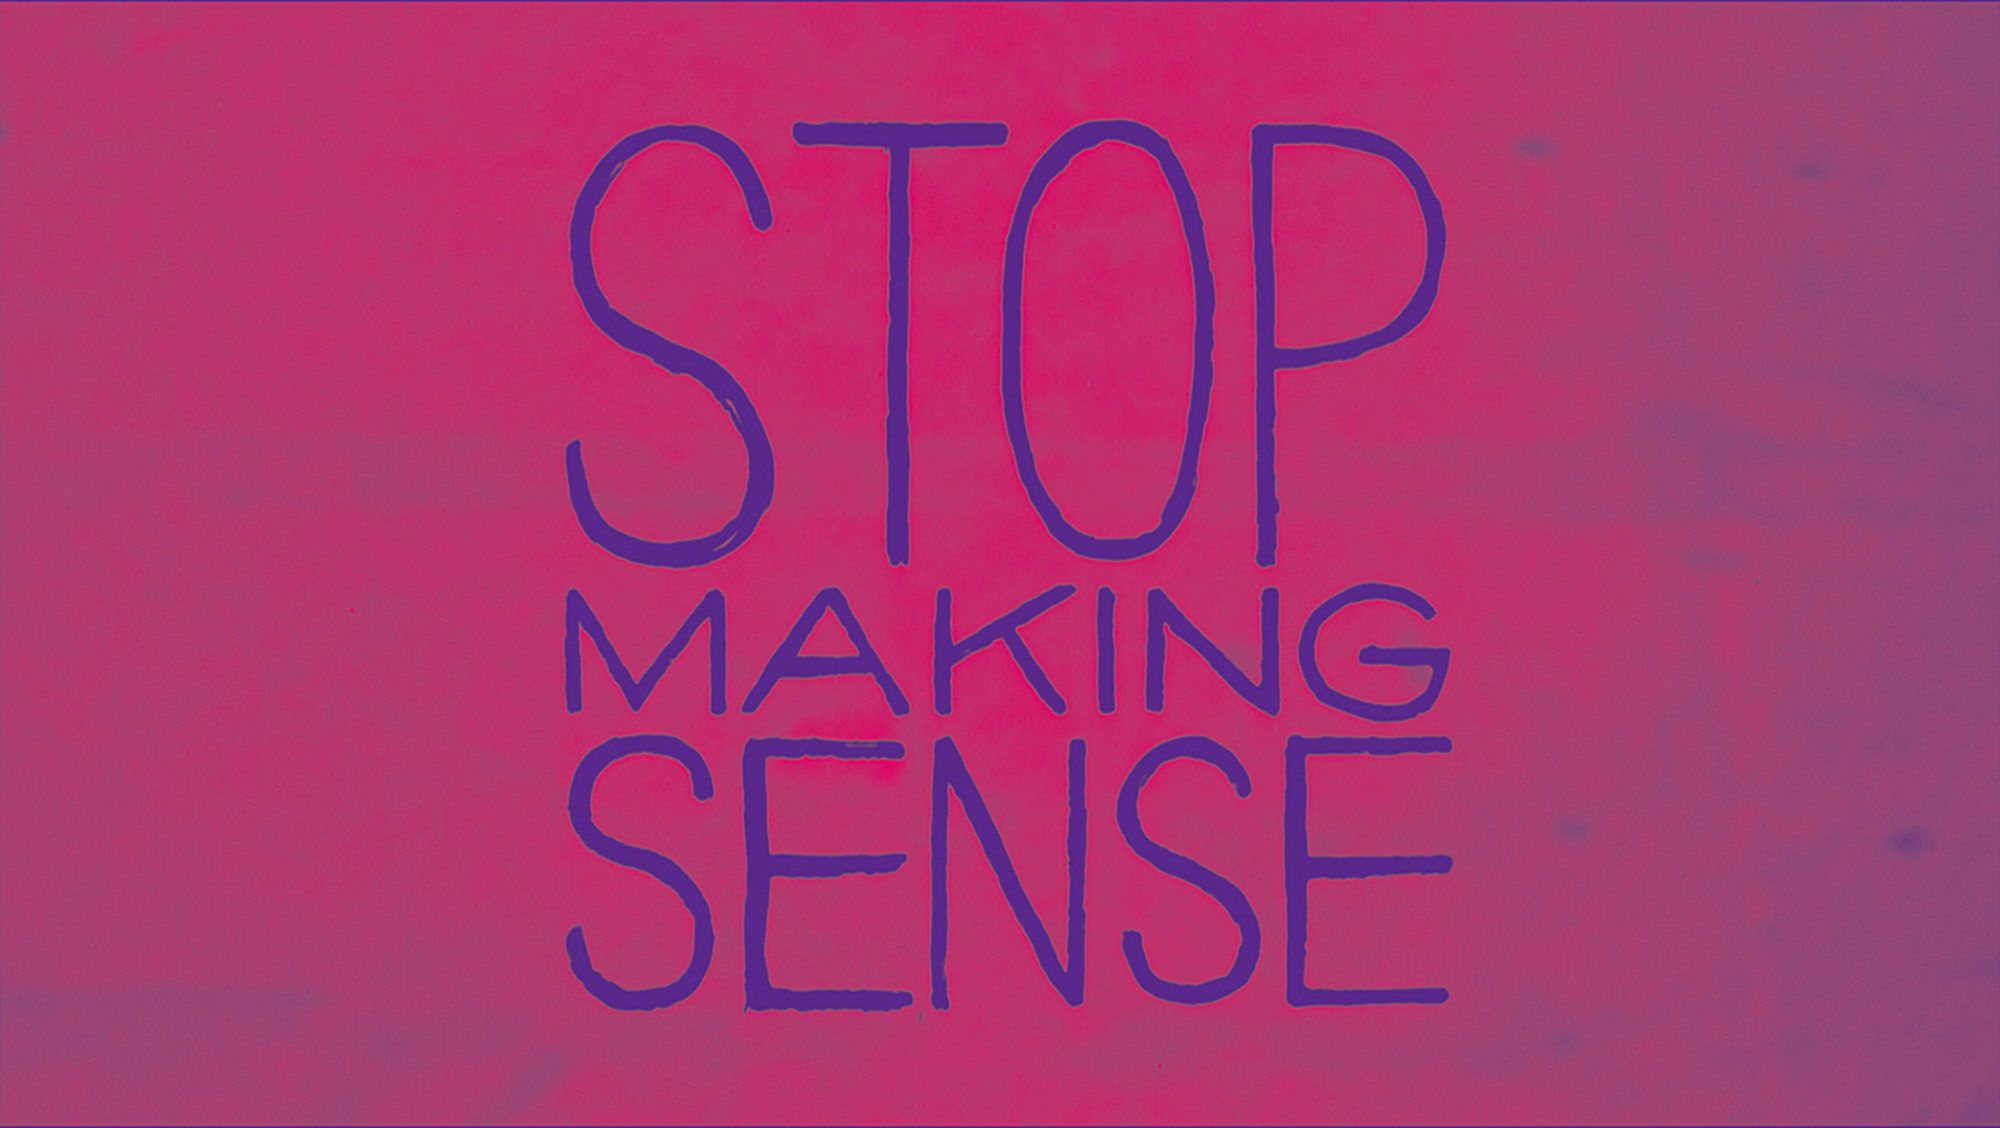 Stop Making Sense, by Talking Heads